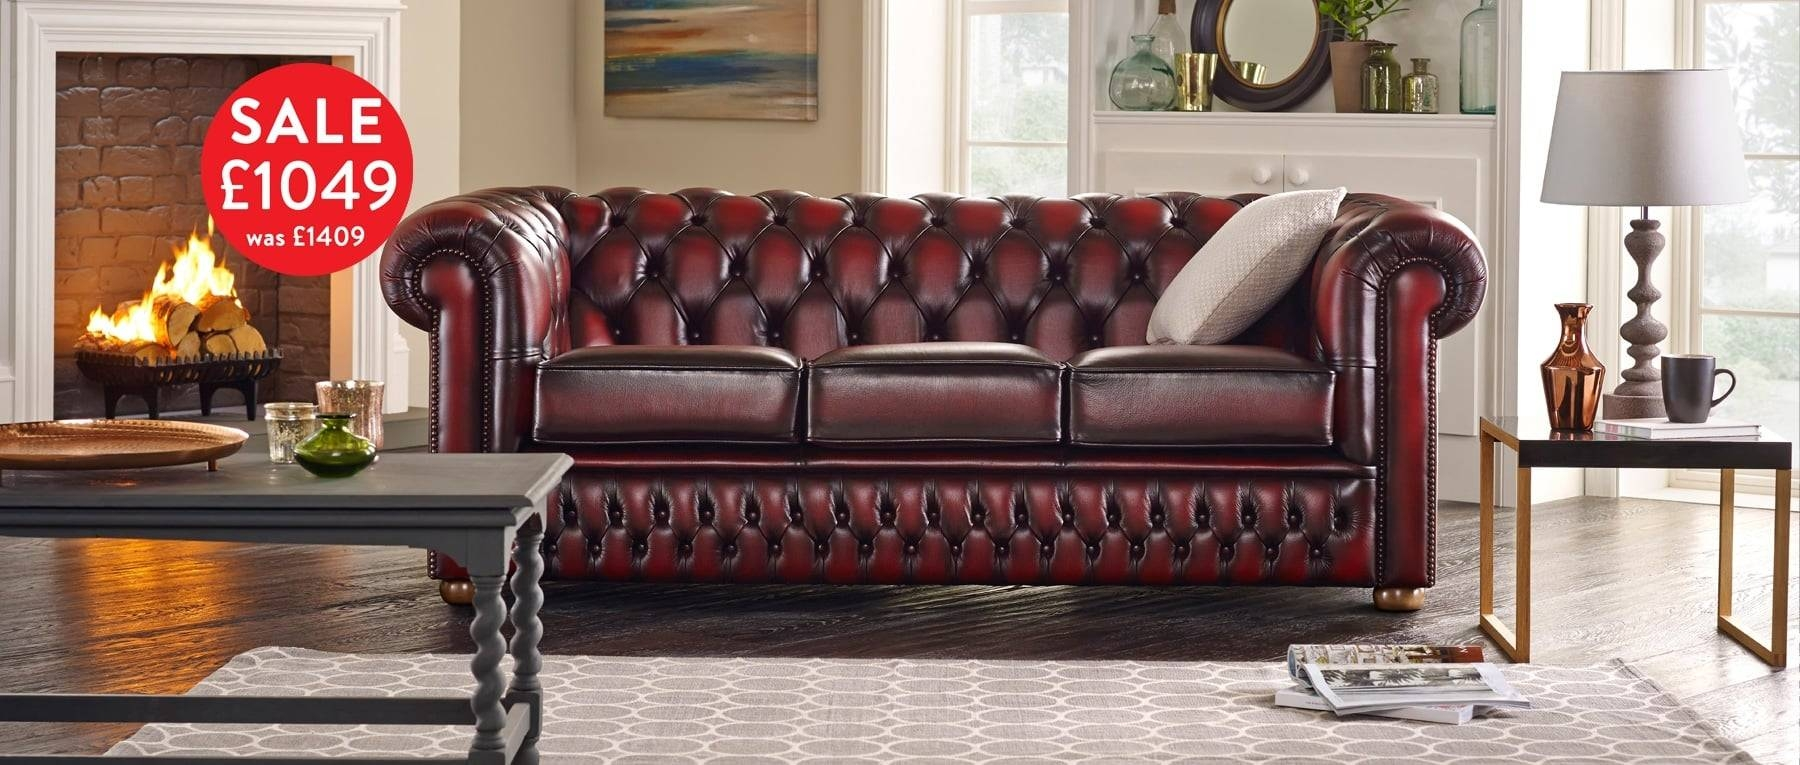 Bespoke Chesterfield Furniture Handmade In Britain | Sofassaxon regarding Chesterfield Furniture (Image 3 of 30)